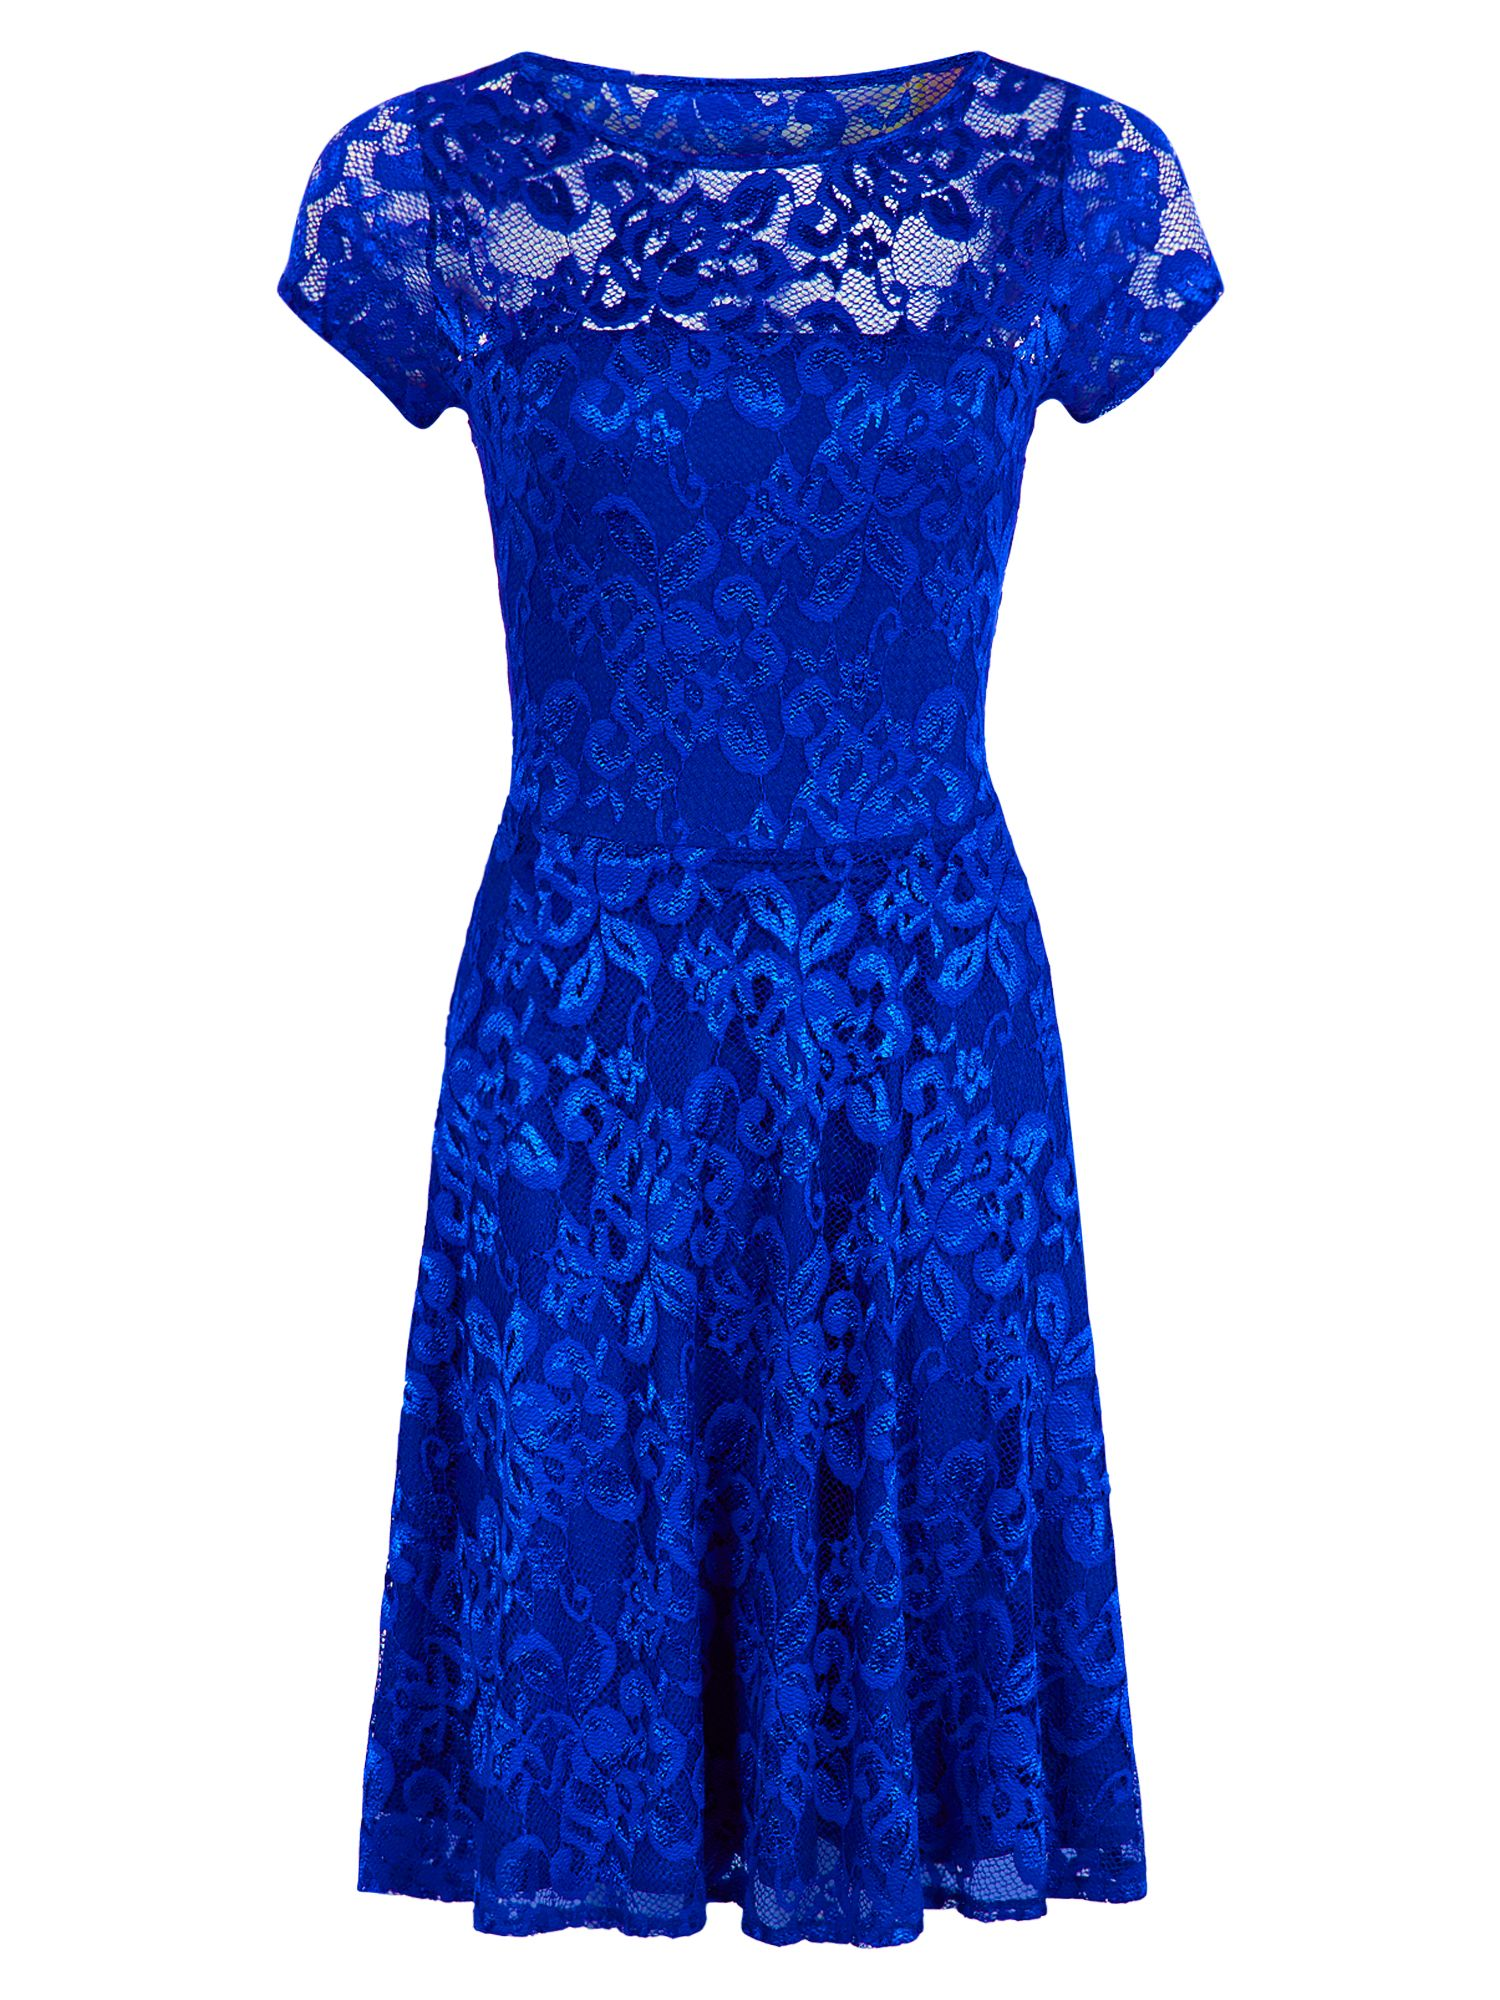 HotSquash Lace Fit n Flare Dress with Thermal Lini, Royal Blue